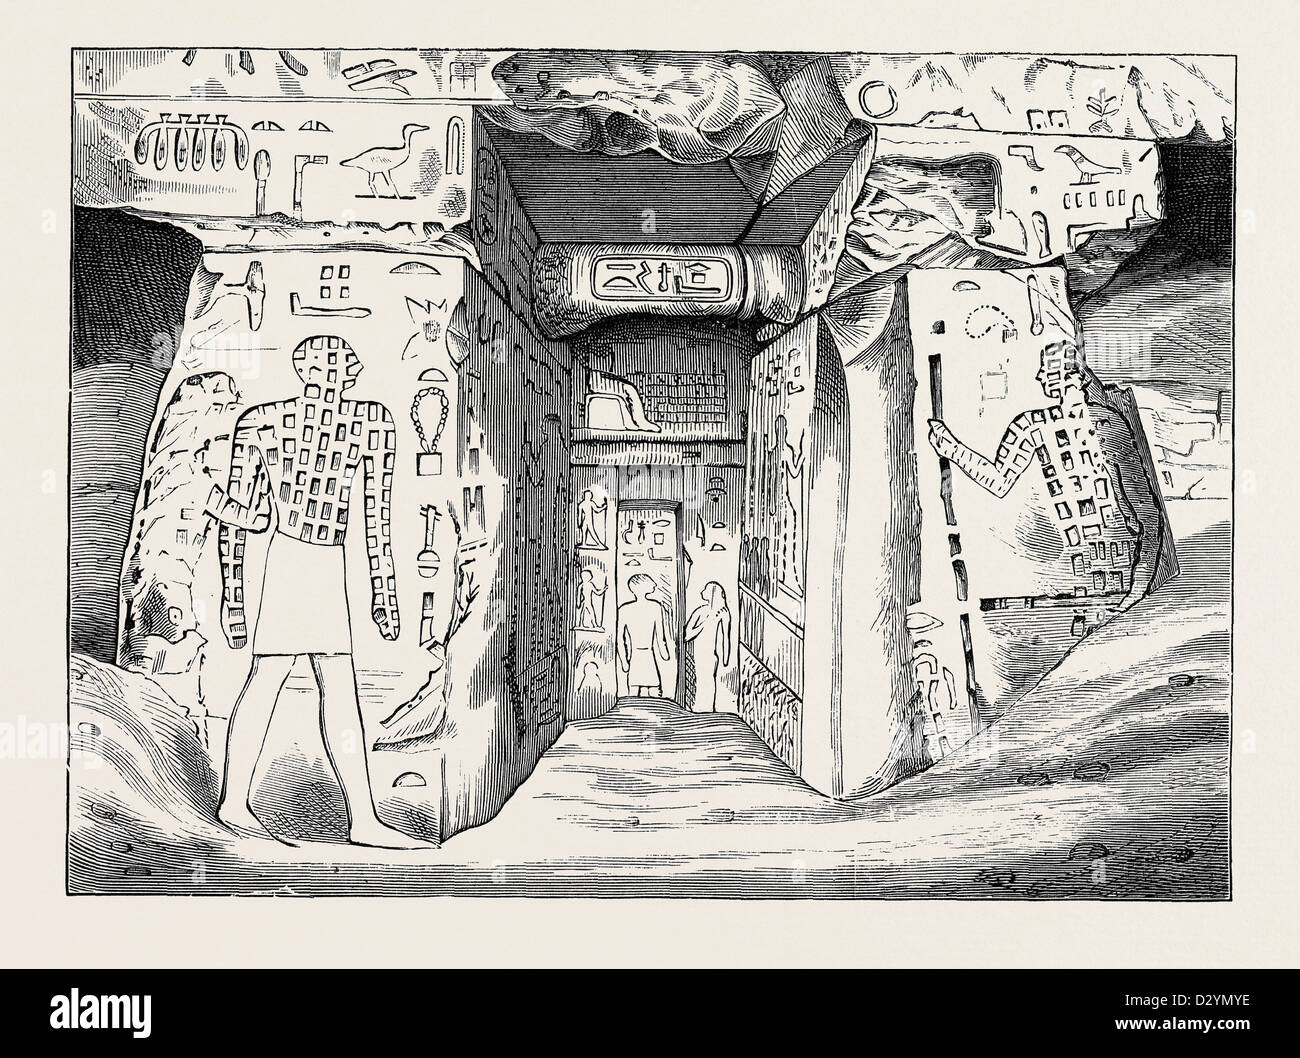 TOMB OF NOFRE MA AN EGYPTIAN OF THE THIRD DYNASTY AT MEIDOUM 1880 - Stock Image